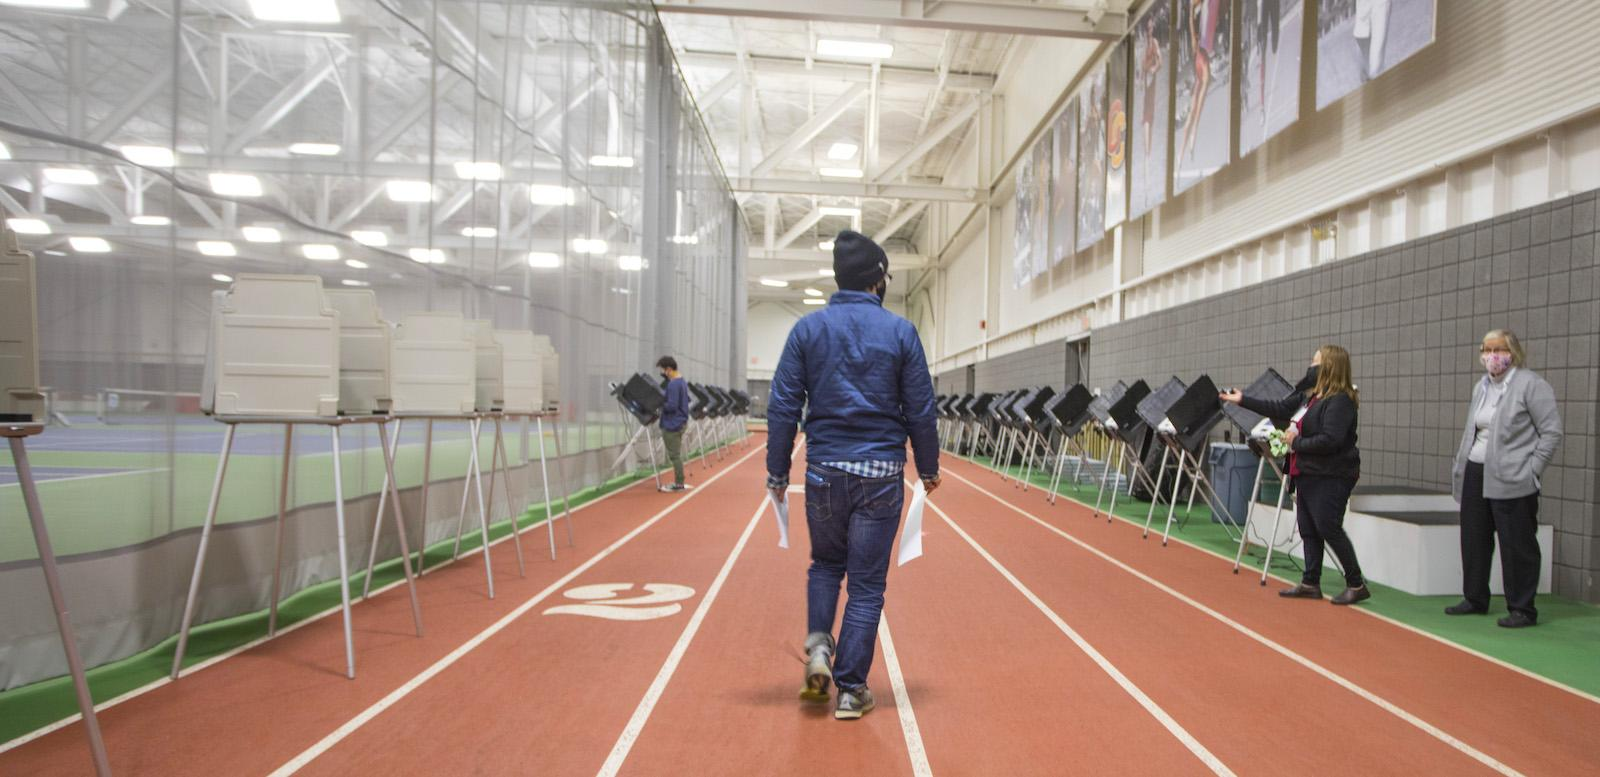 person walking on a indoor track toward a voting booth.